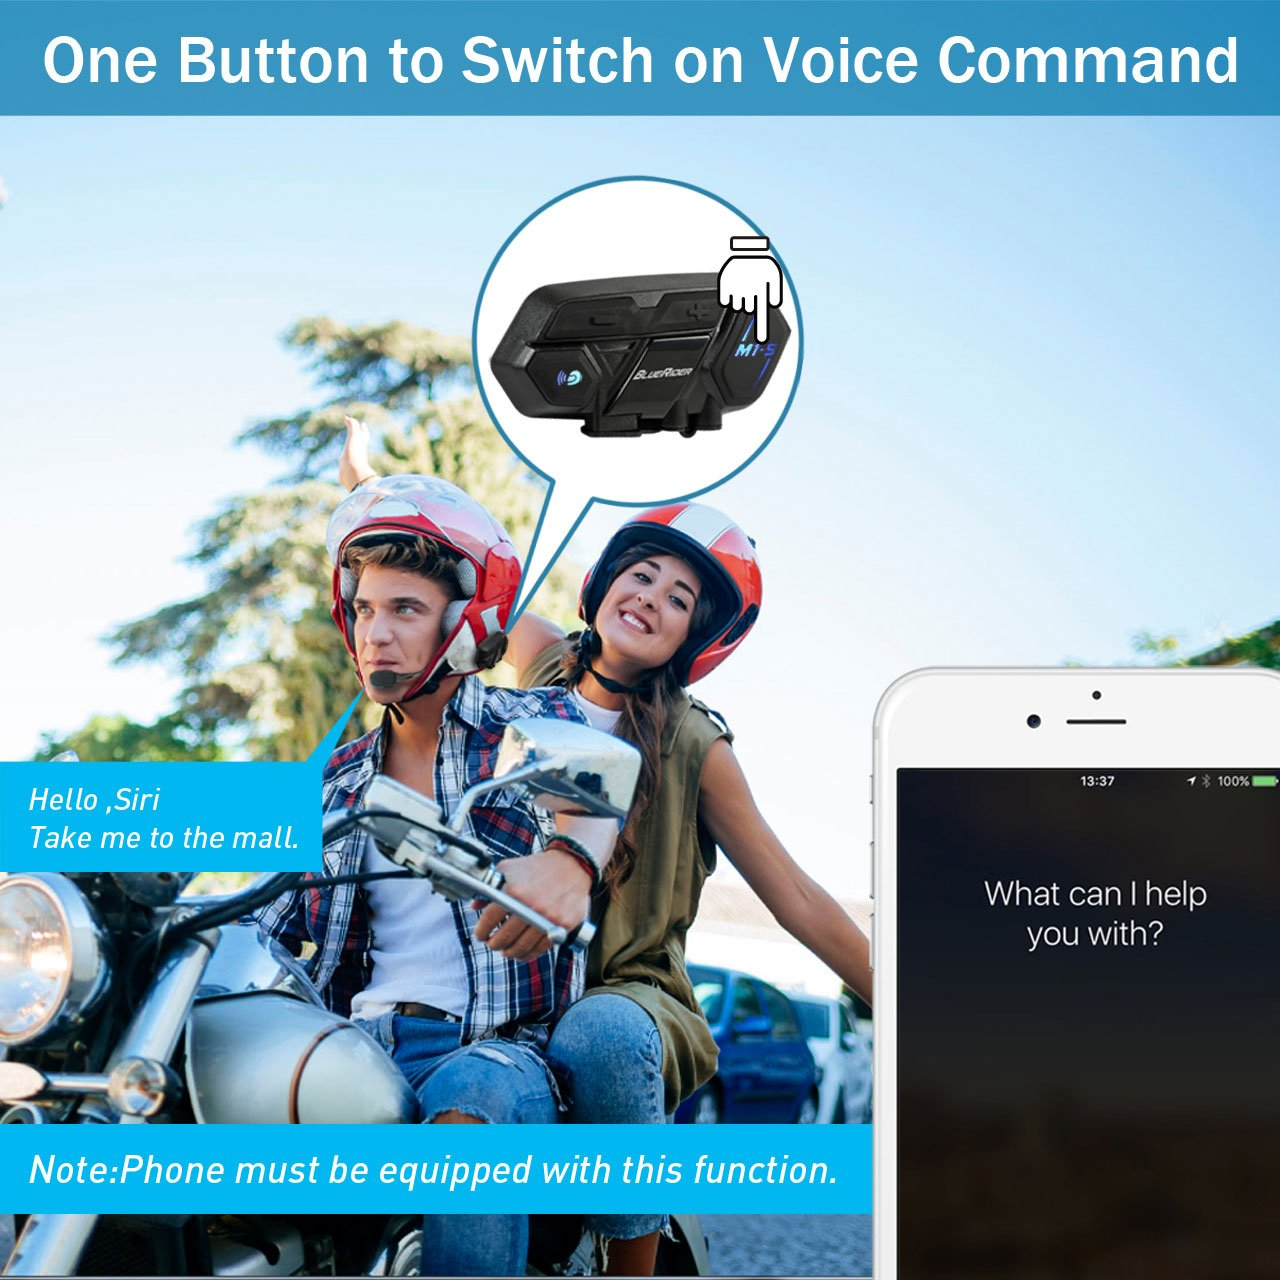 Motorcycle Bluetooth 4.1 Helmet Headset and Intercom Communication Systems Kit, Supports 8 riders group intercom, Handsfree Calls Voice Command 12hrs with Speakers headphones for Motorbike Skiing by BIBENE (Image #4)